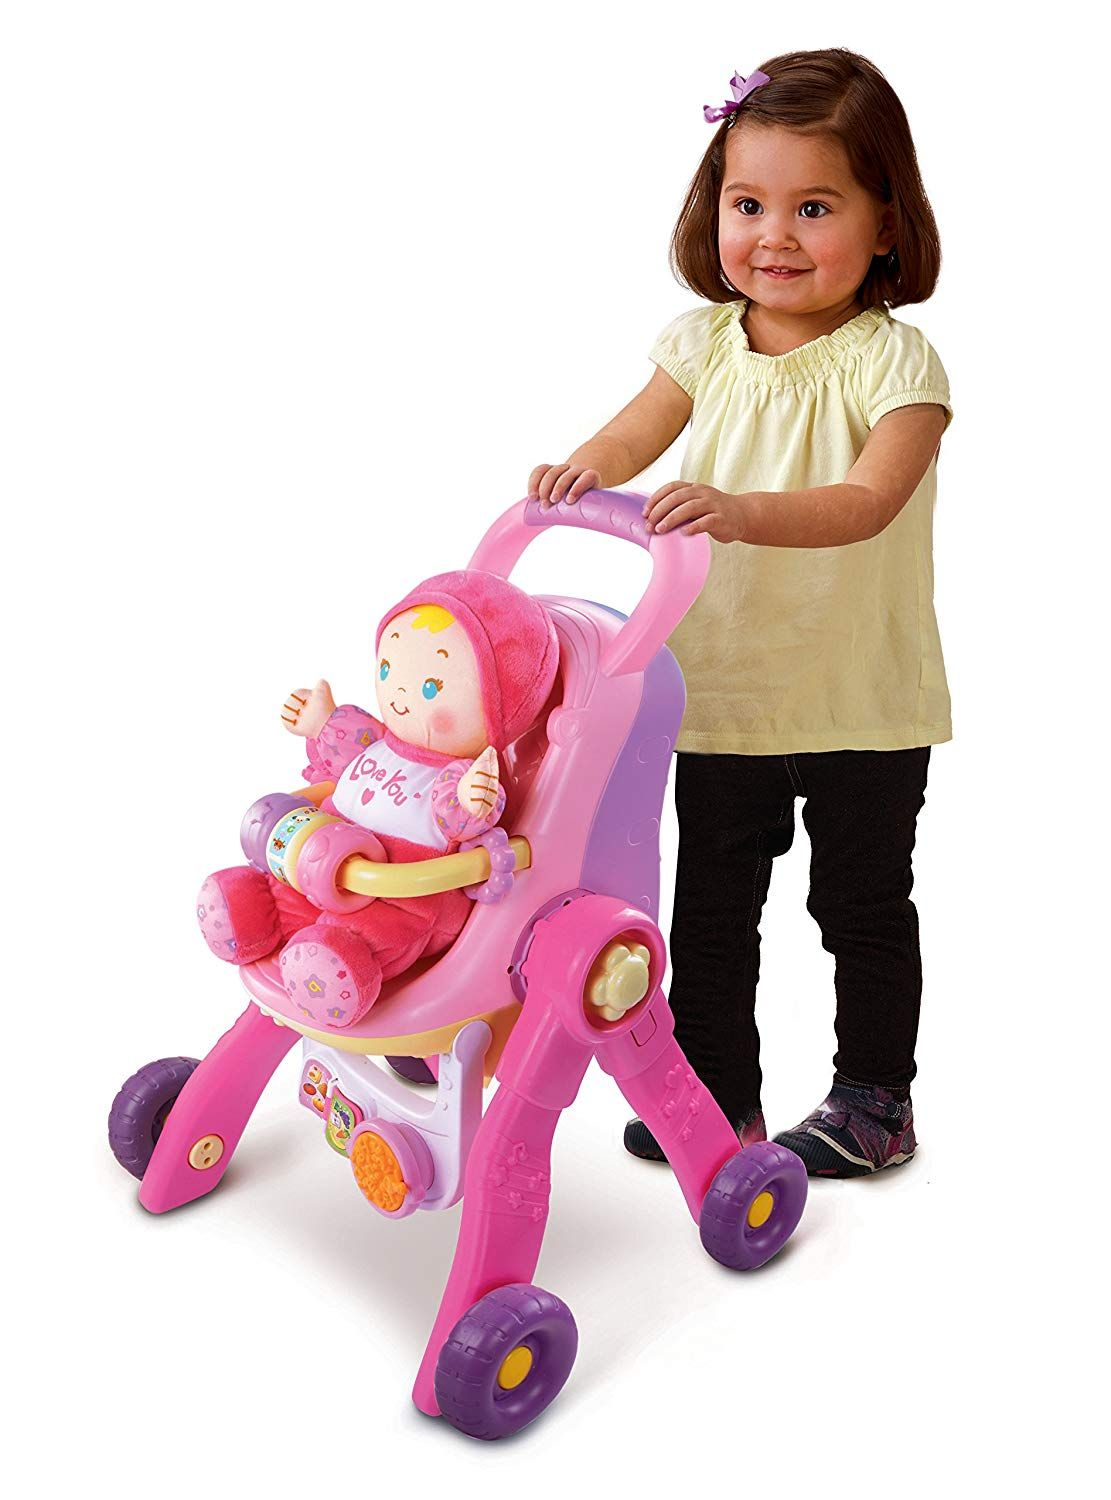 Best Gifts And Toys For 1 Year Old Girls Baby Doll Strollers